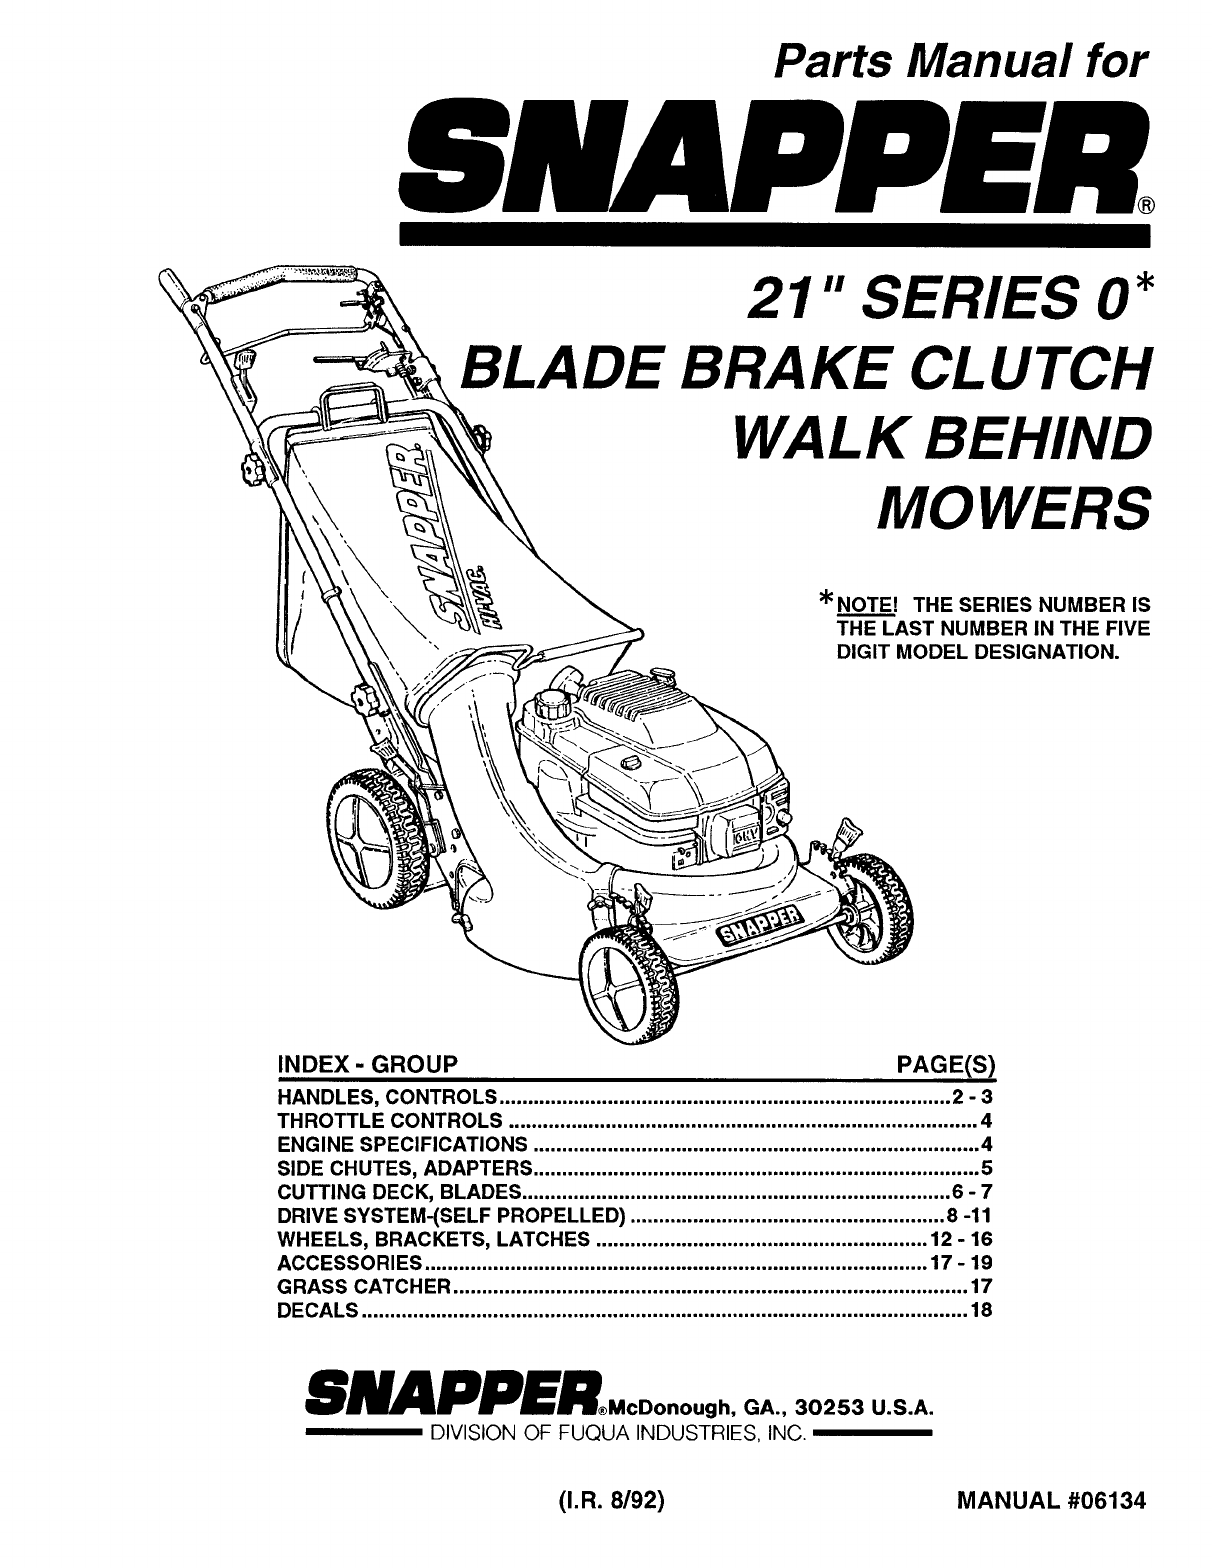 Snapper Manual Auto Electrical Wiring Diagram Z1804k Diagrams Lawn Mower 06134 User Guide